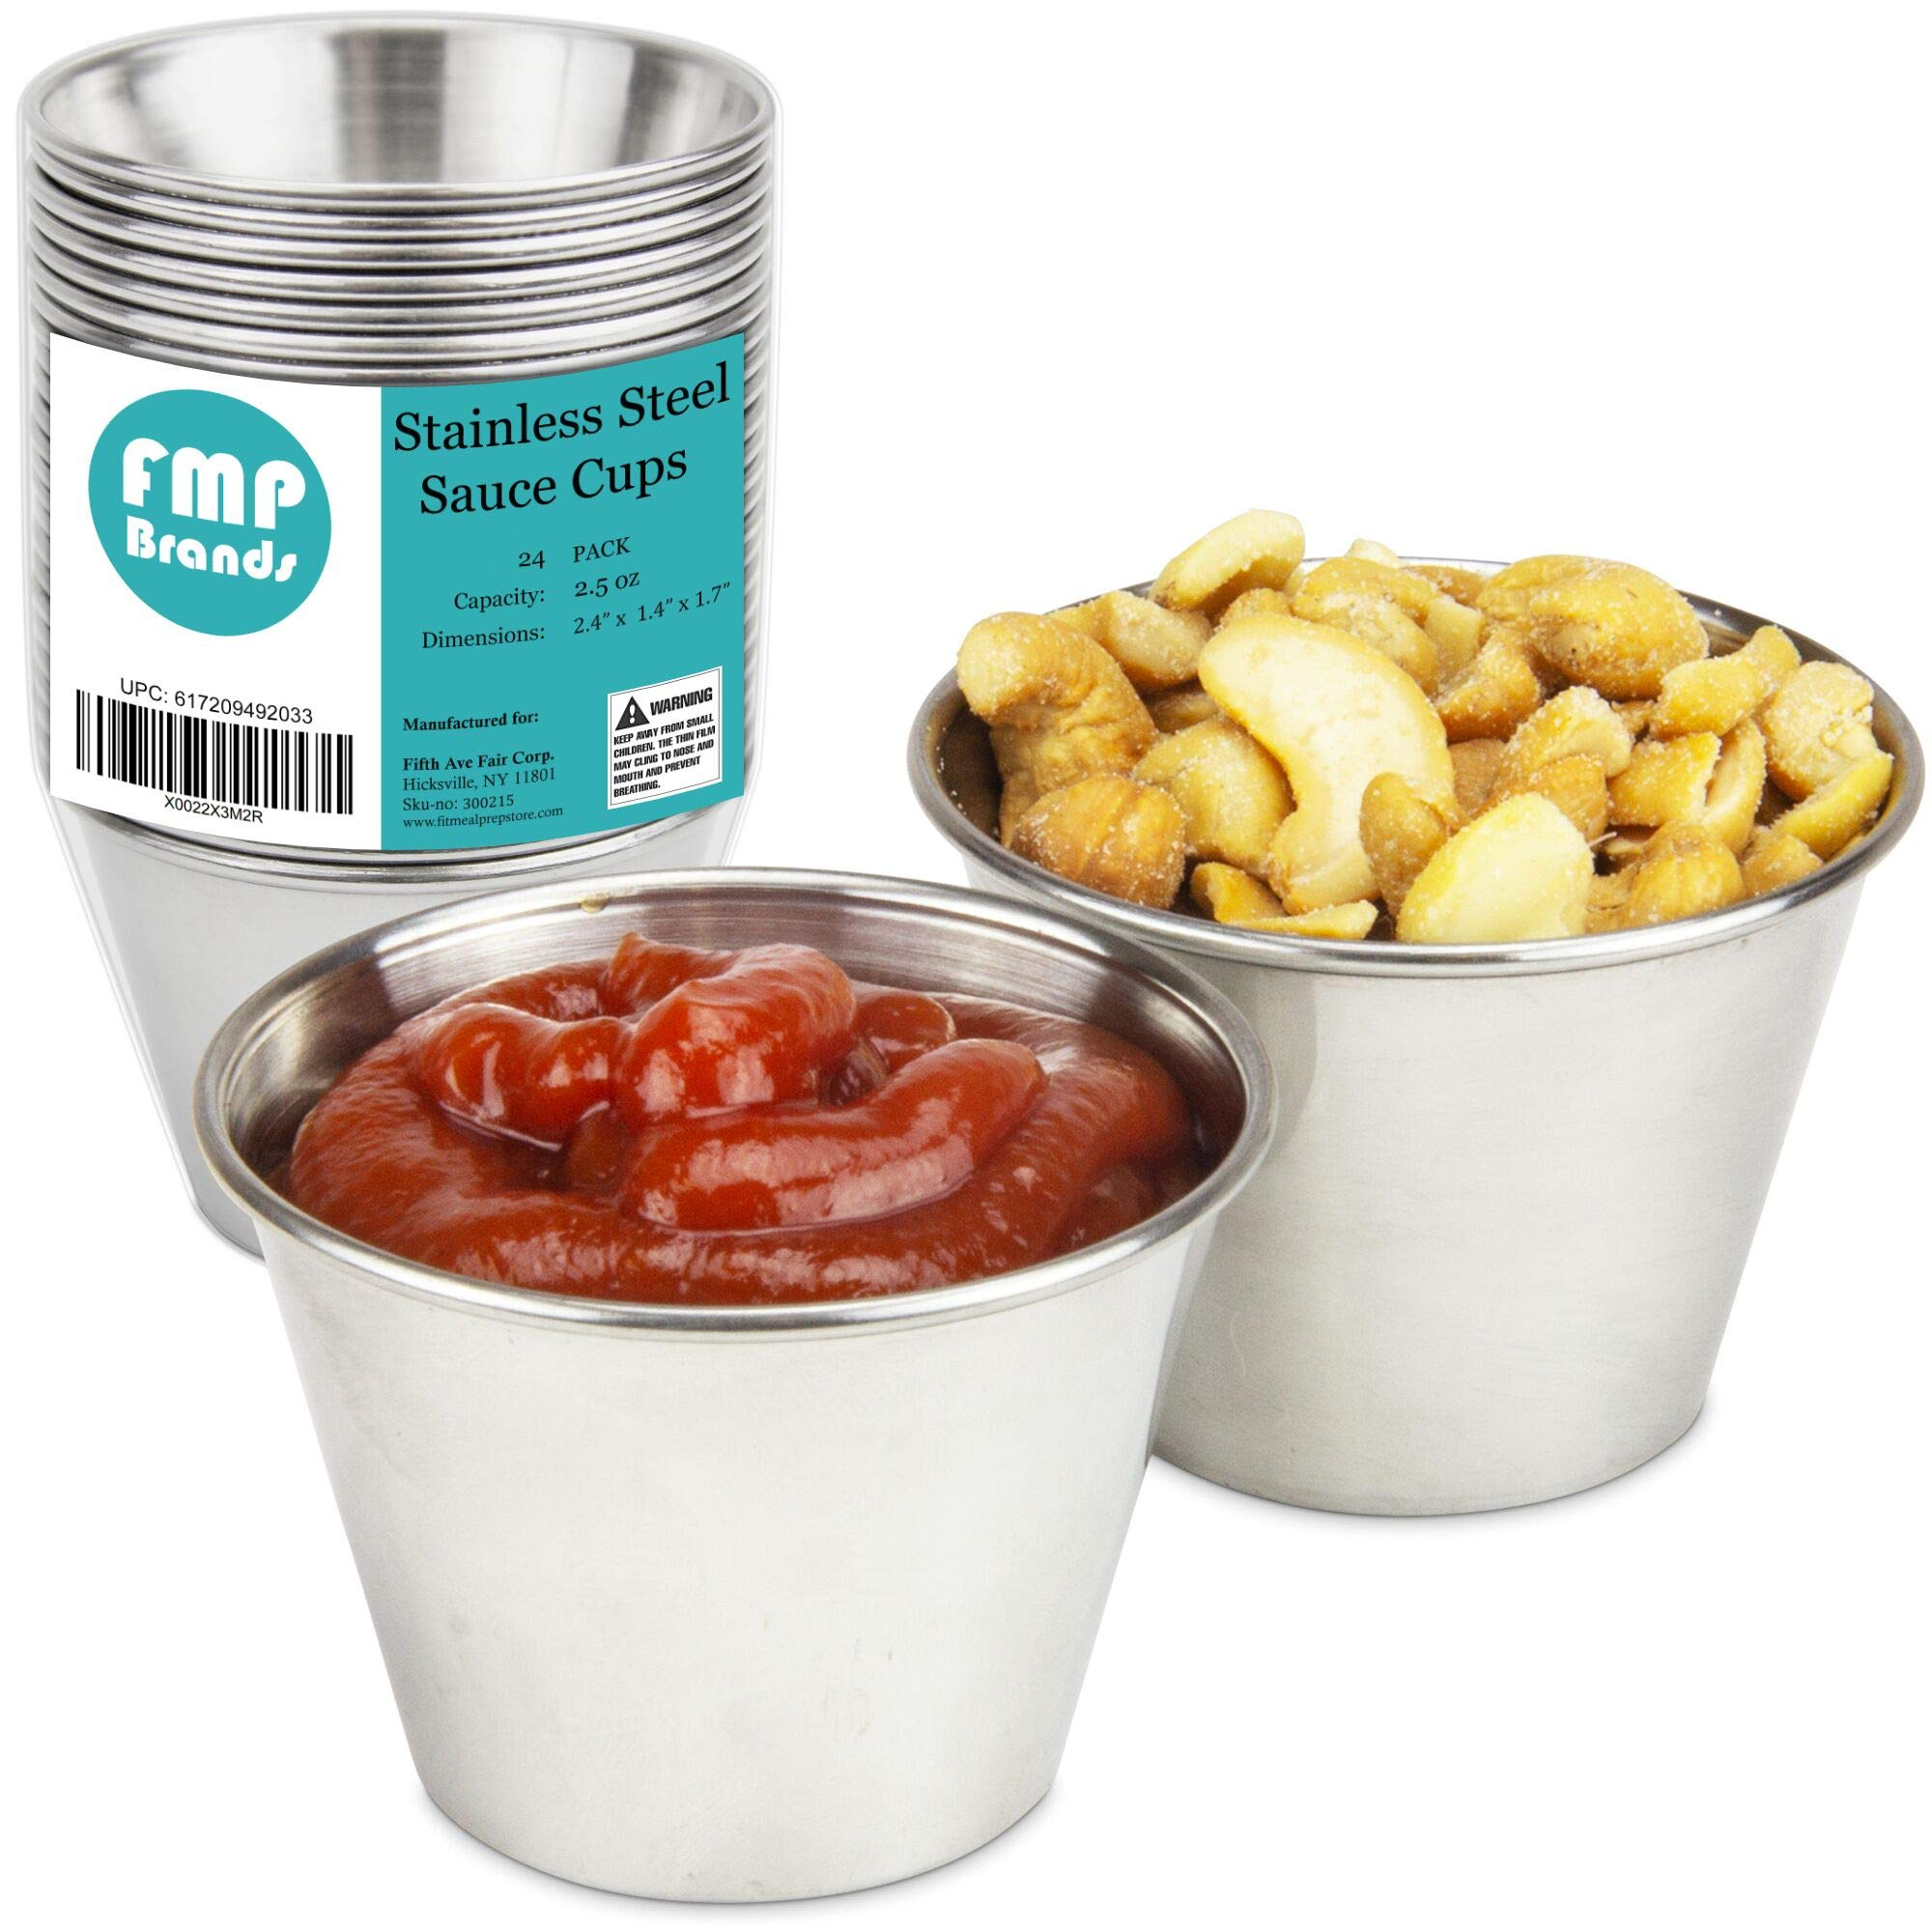 [24 Pack] 2.5 oz Stainless Steel Sauce Cups - Individual Round Condiments Ramekins, Commercial Grade Safe/Portion Dipping Sauce Kitchen Set by Fit Meal Prep